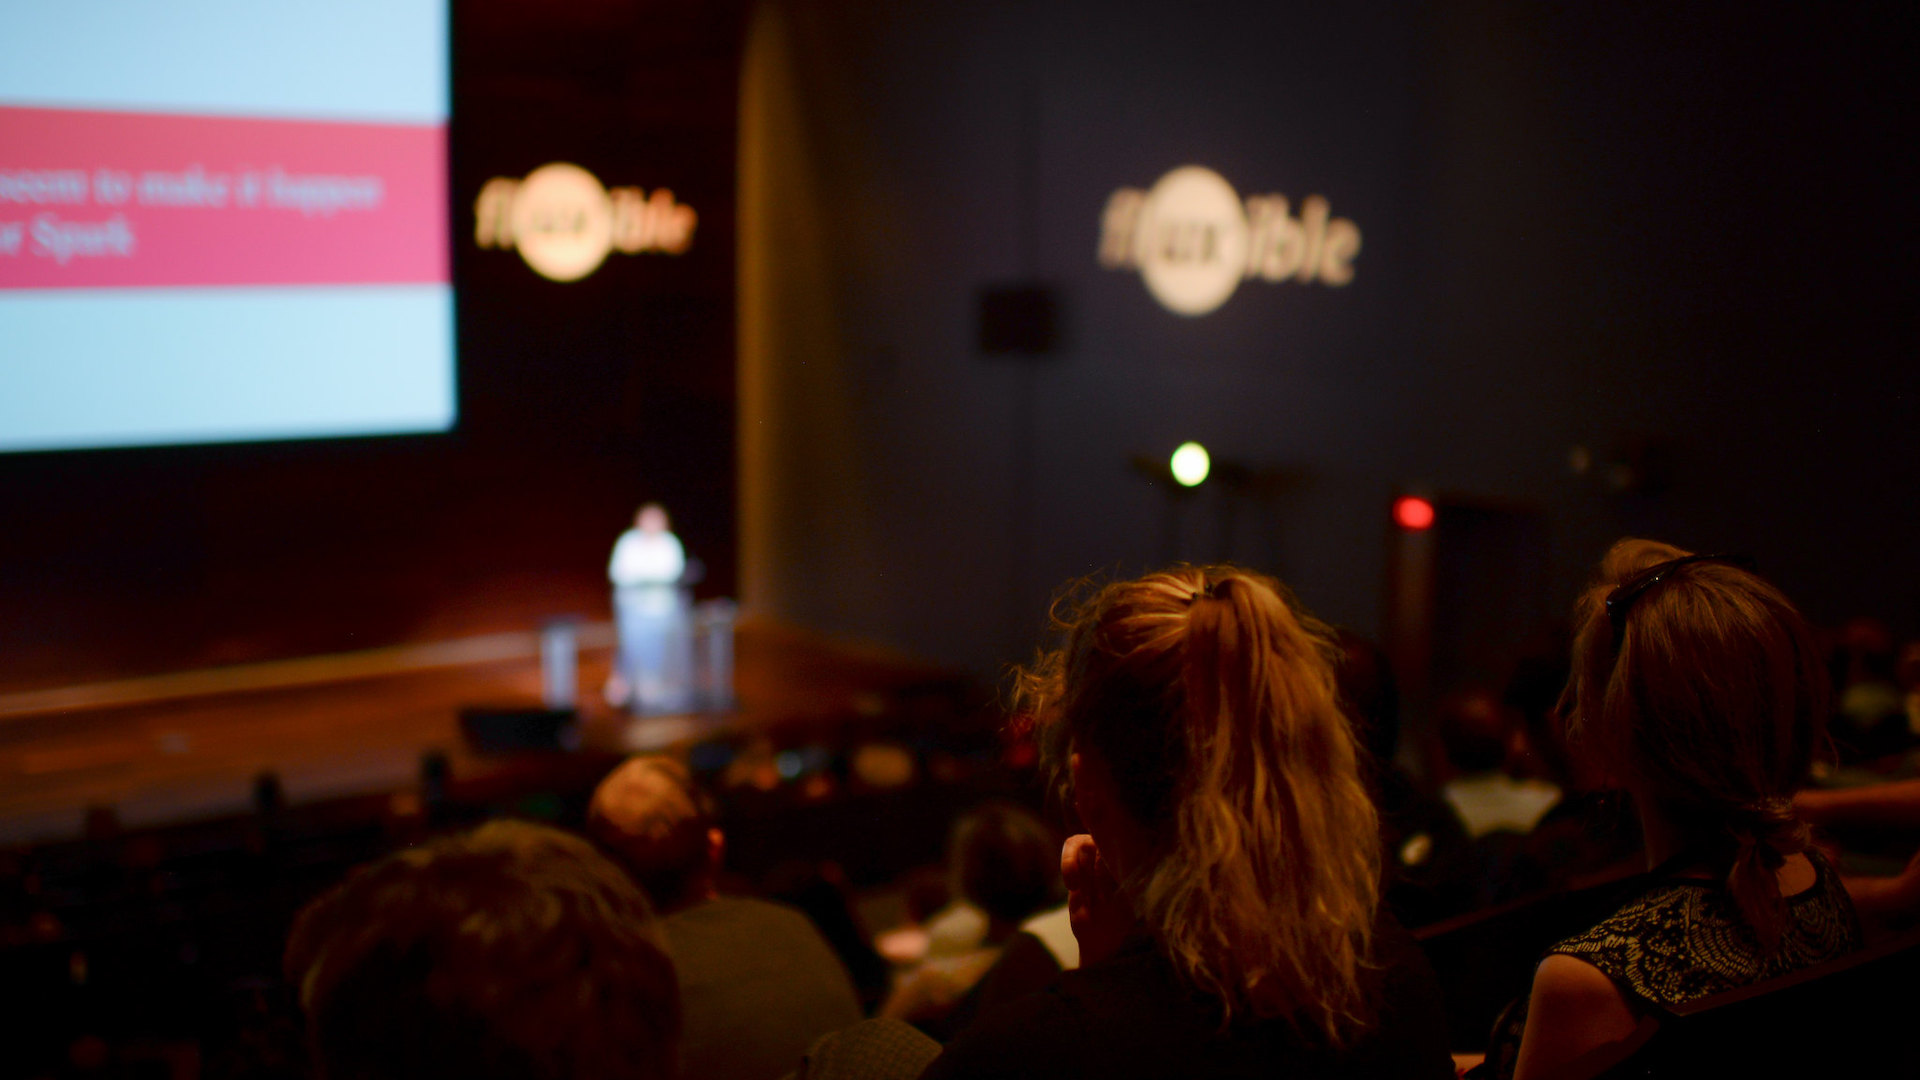 A person stands on the stage during Fluxible Conference while people from the audience look on.